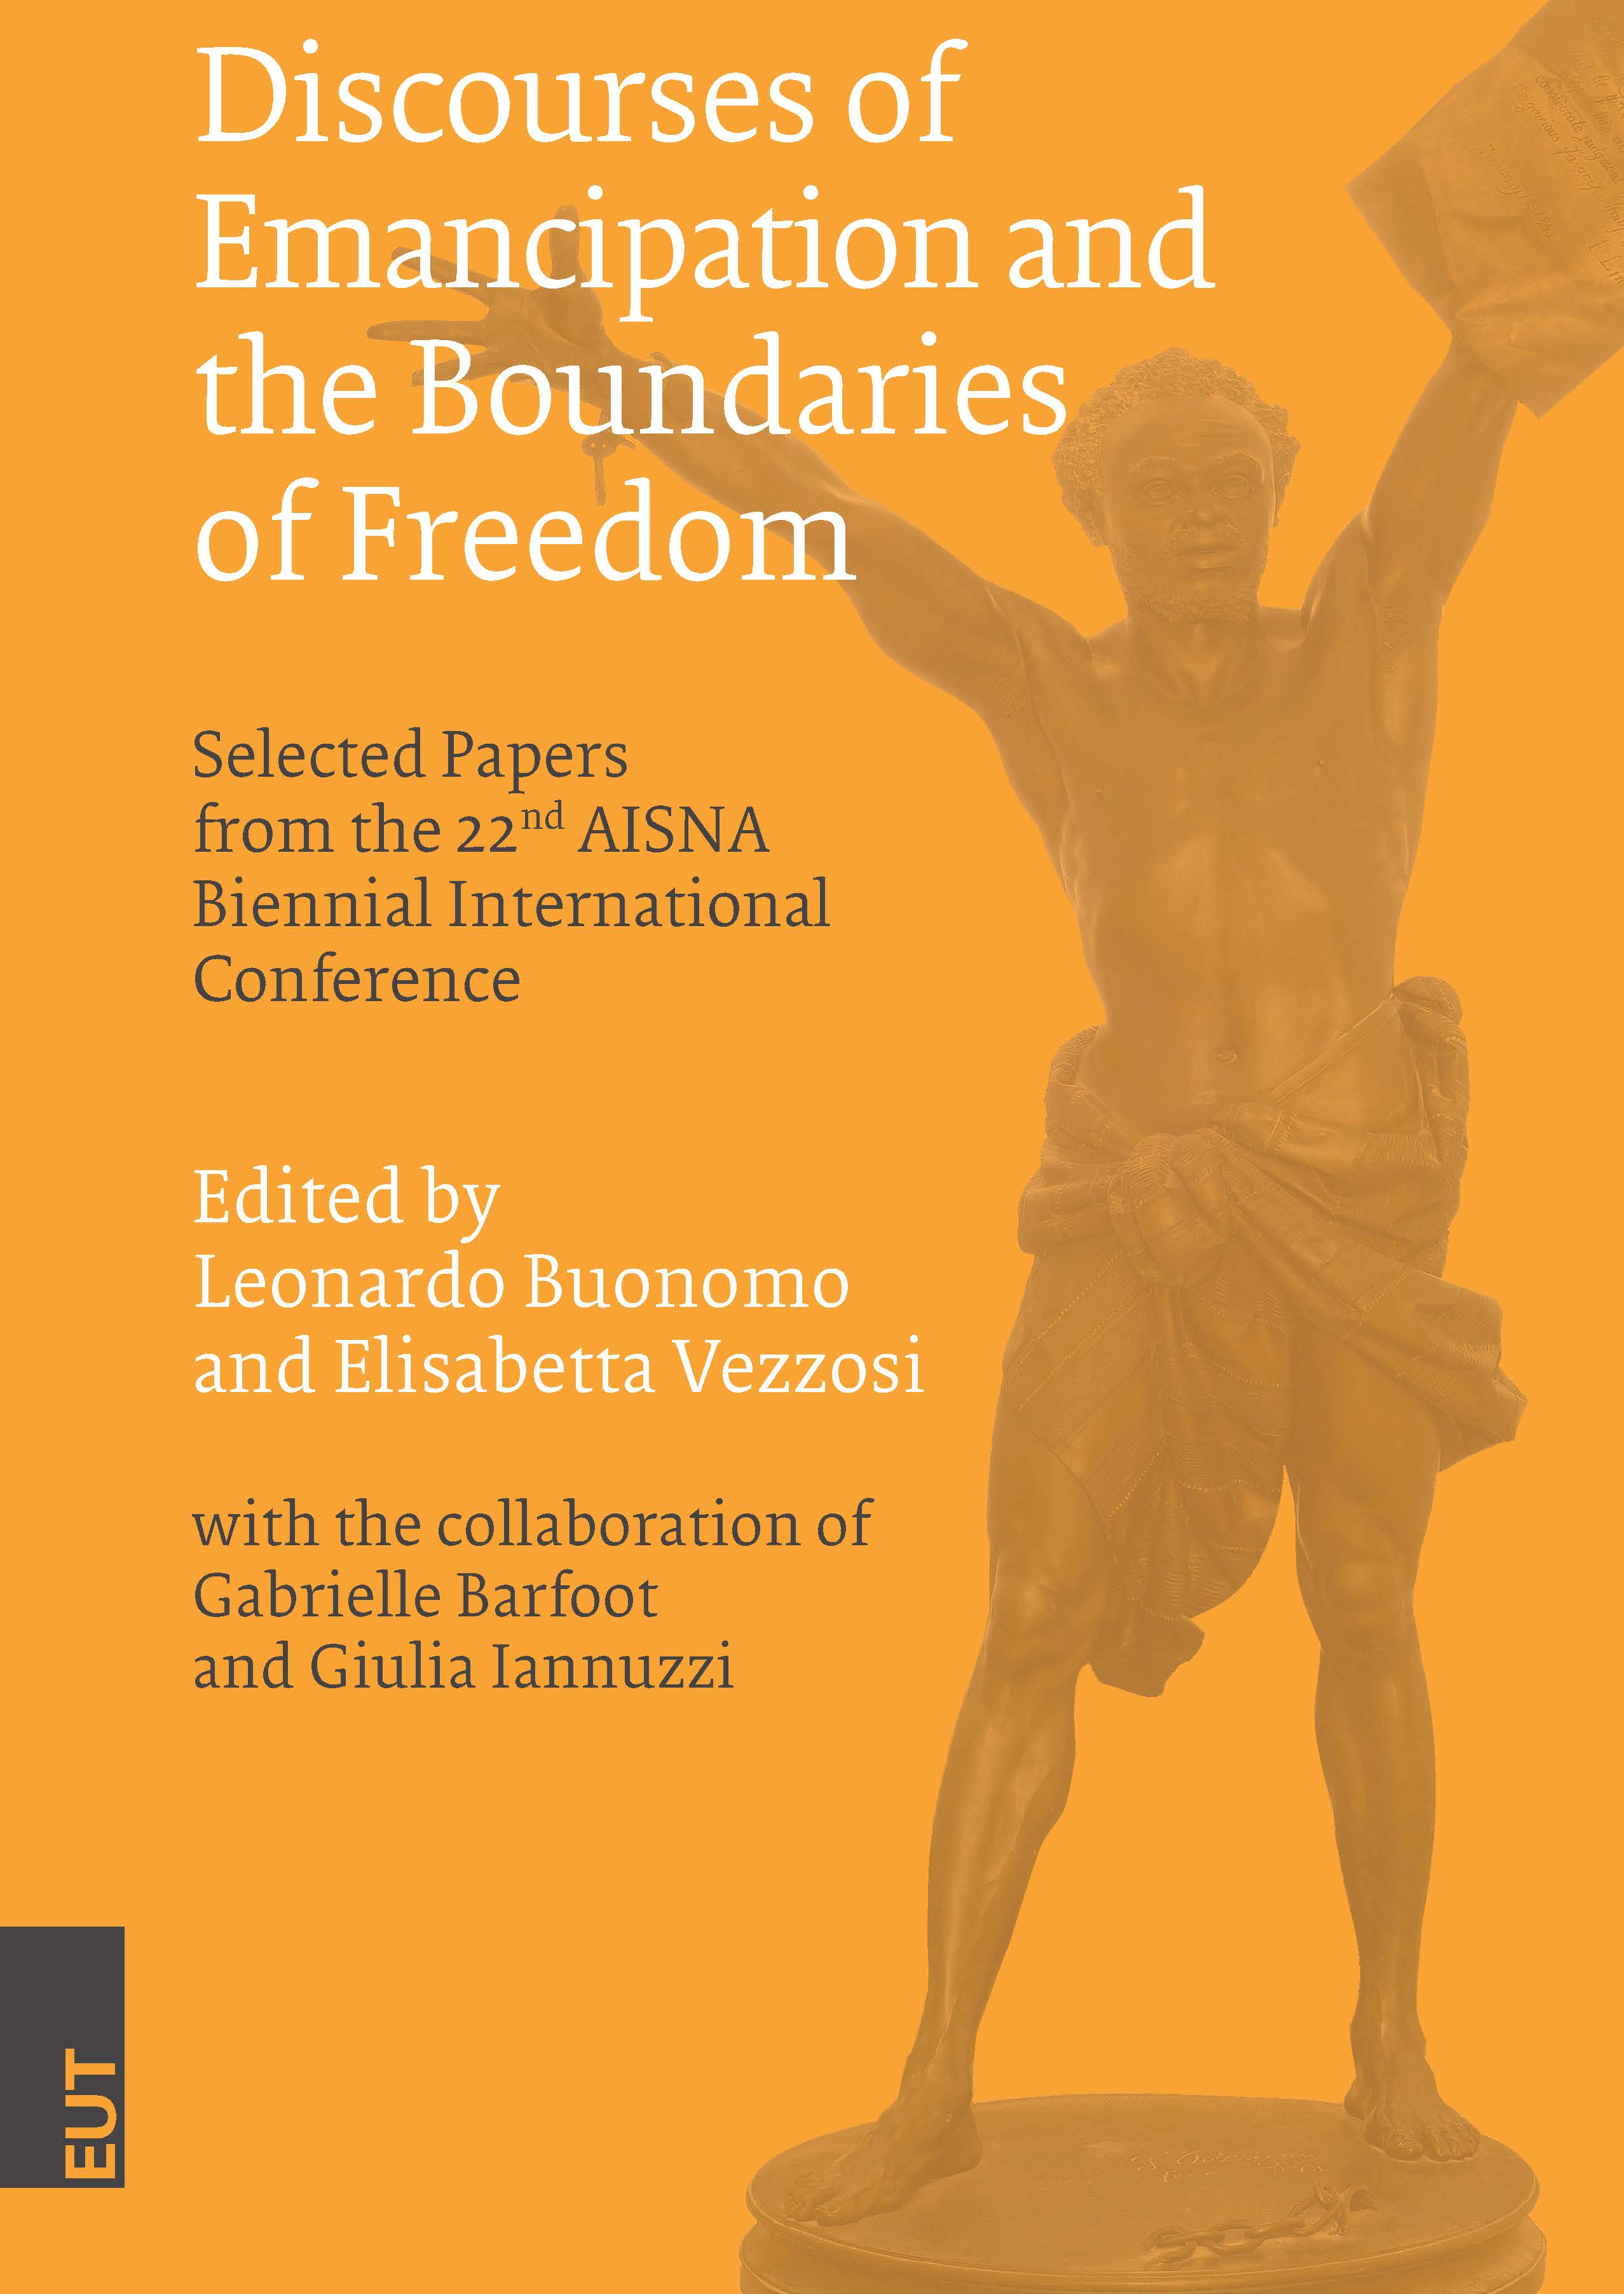 Discourses of Emancipation and the Boundaries of Freedom. Selected Papers from the 22nd AISNA Biennial International Conference